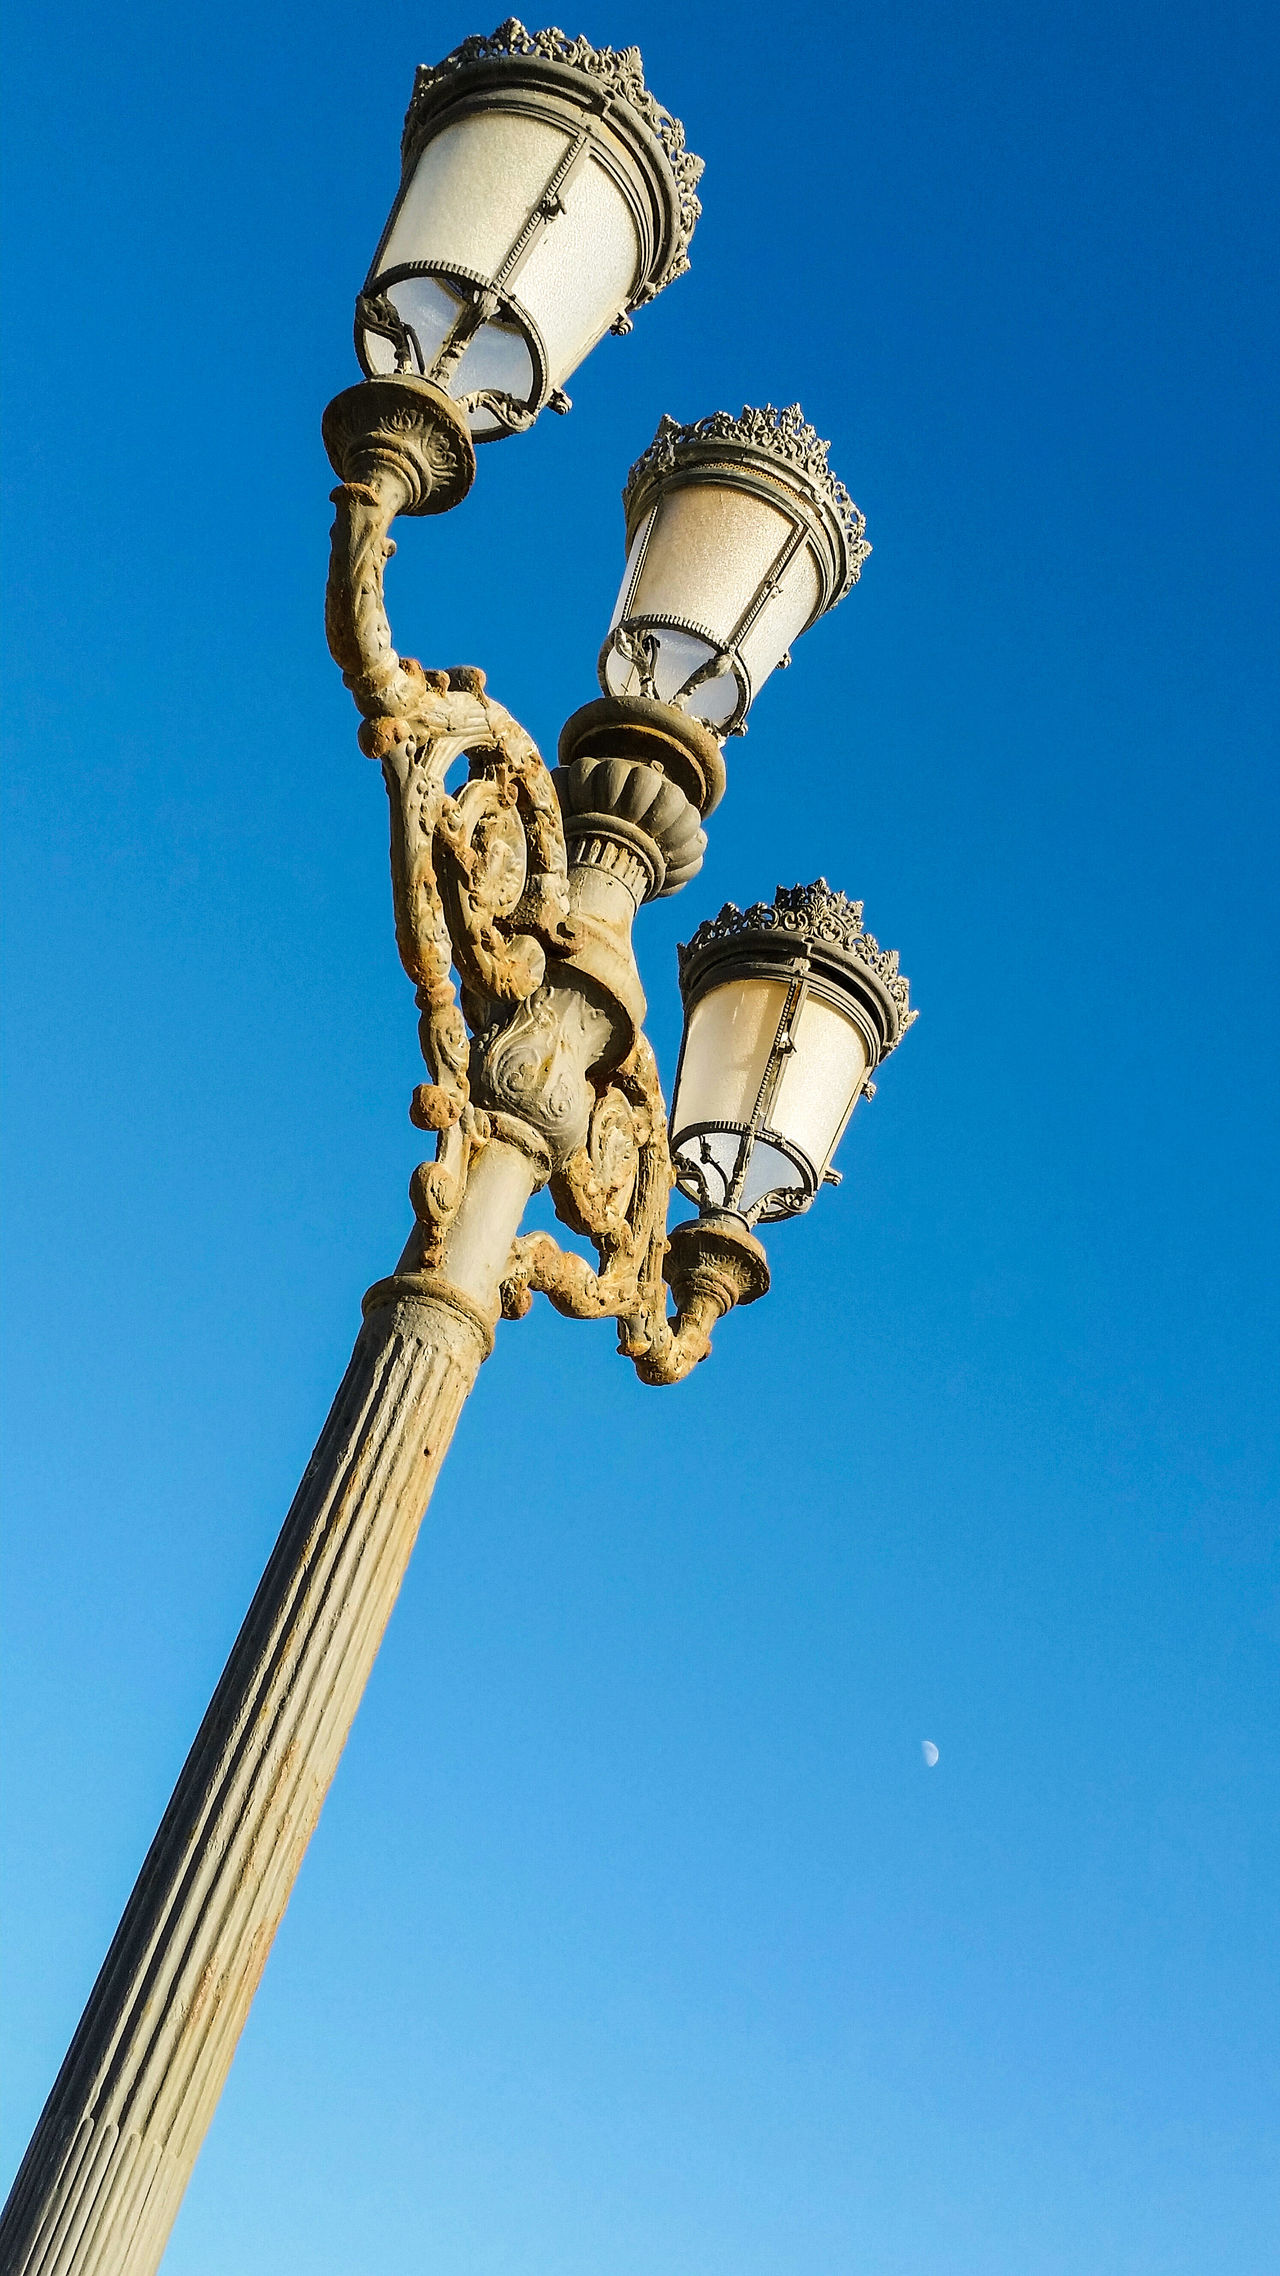 Blue Clear Sky Low Angle View Sky Vertical Outdoors Day Historia Caleta Juanbarrientos Arquitectura Cádiz, Spain España History Artsy Taking Photos Travel Destinations Cadizturismo Creativity Lightpost Lightpole Artsypics